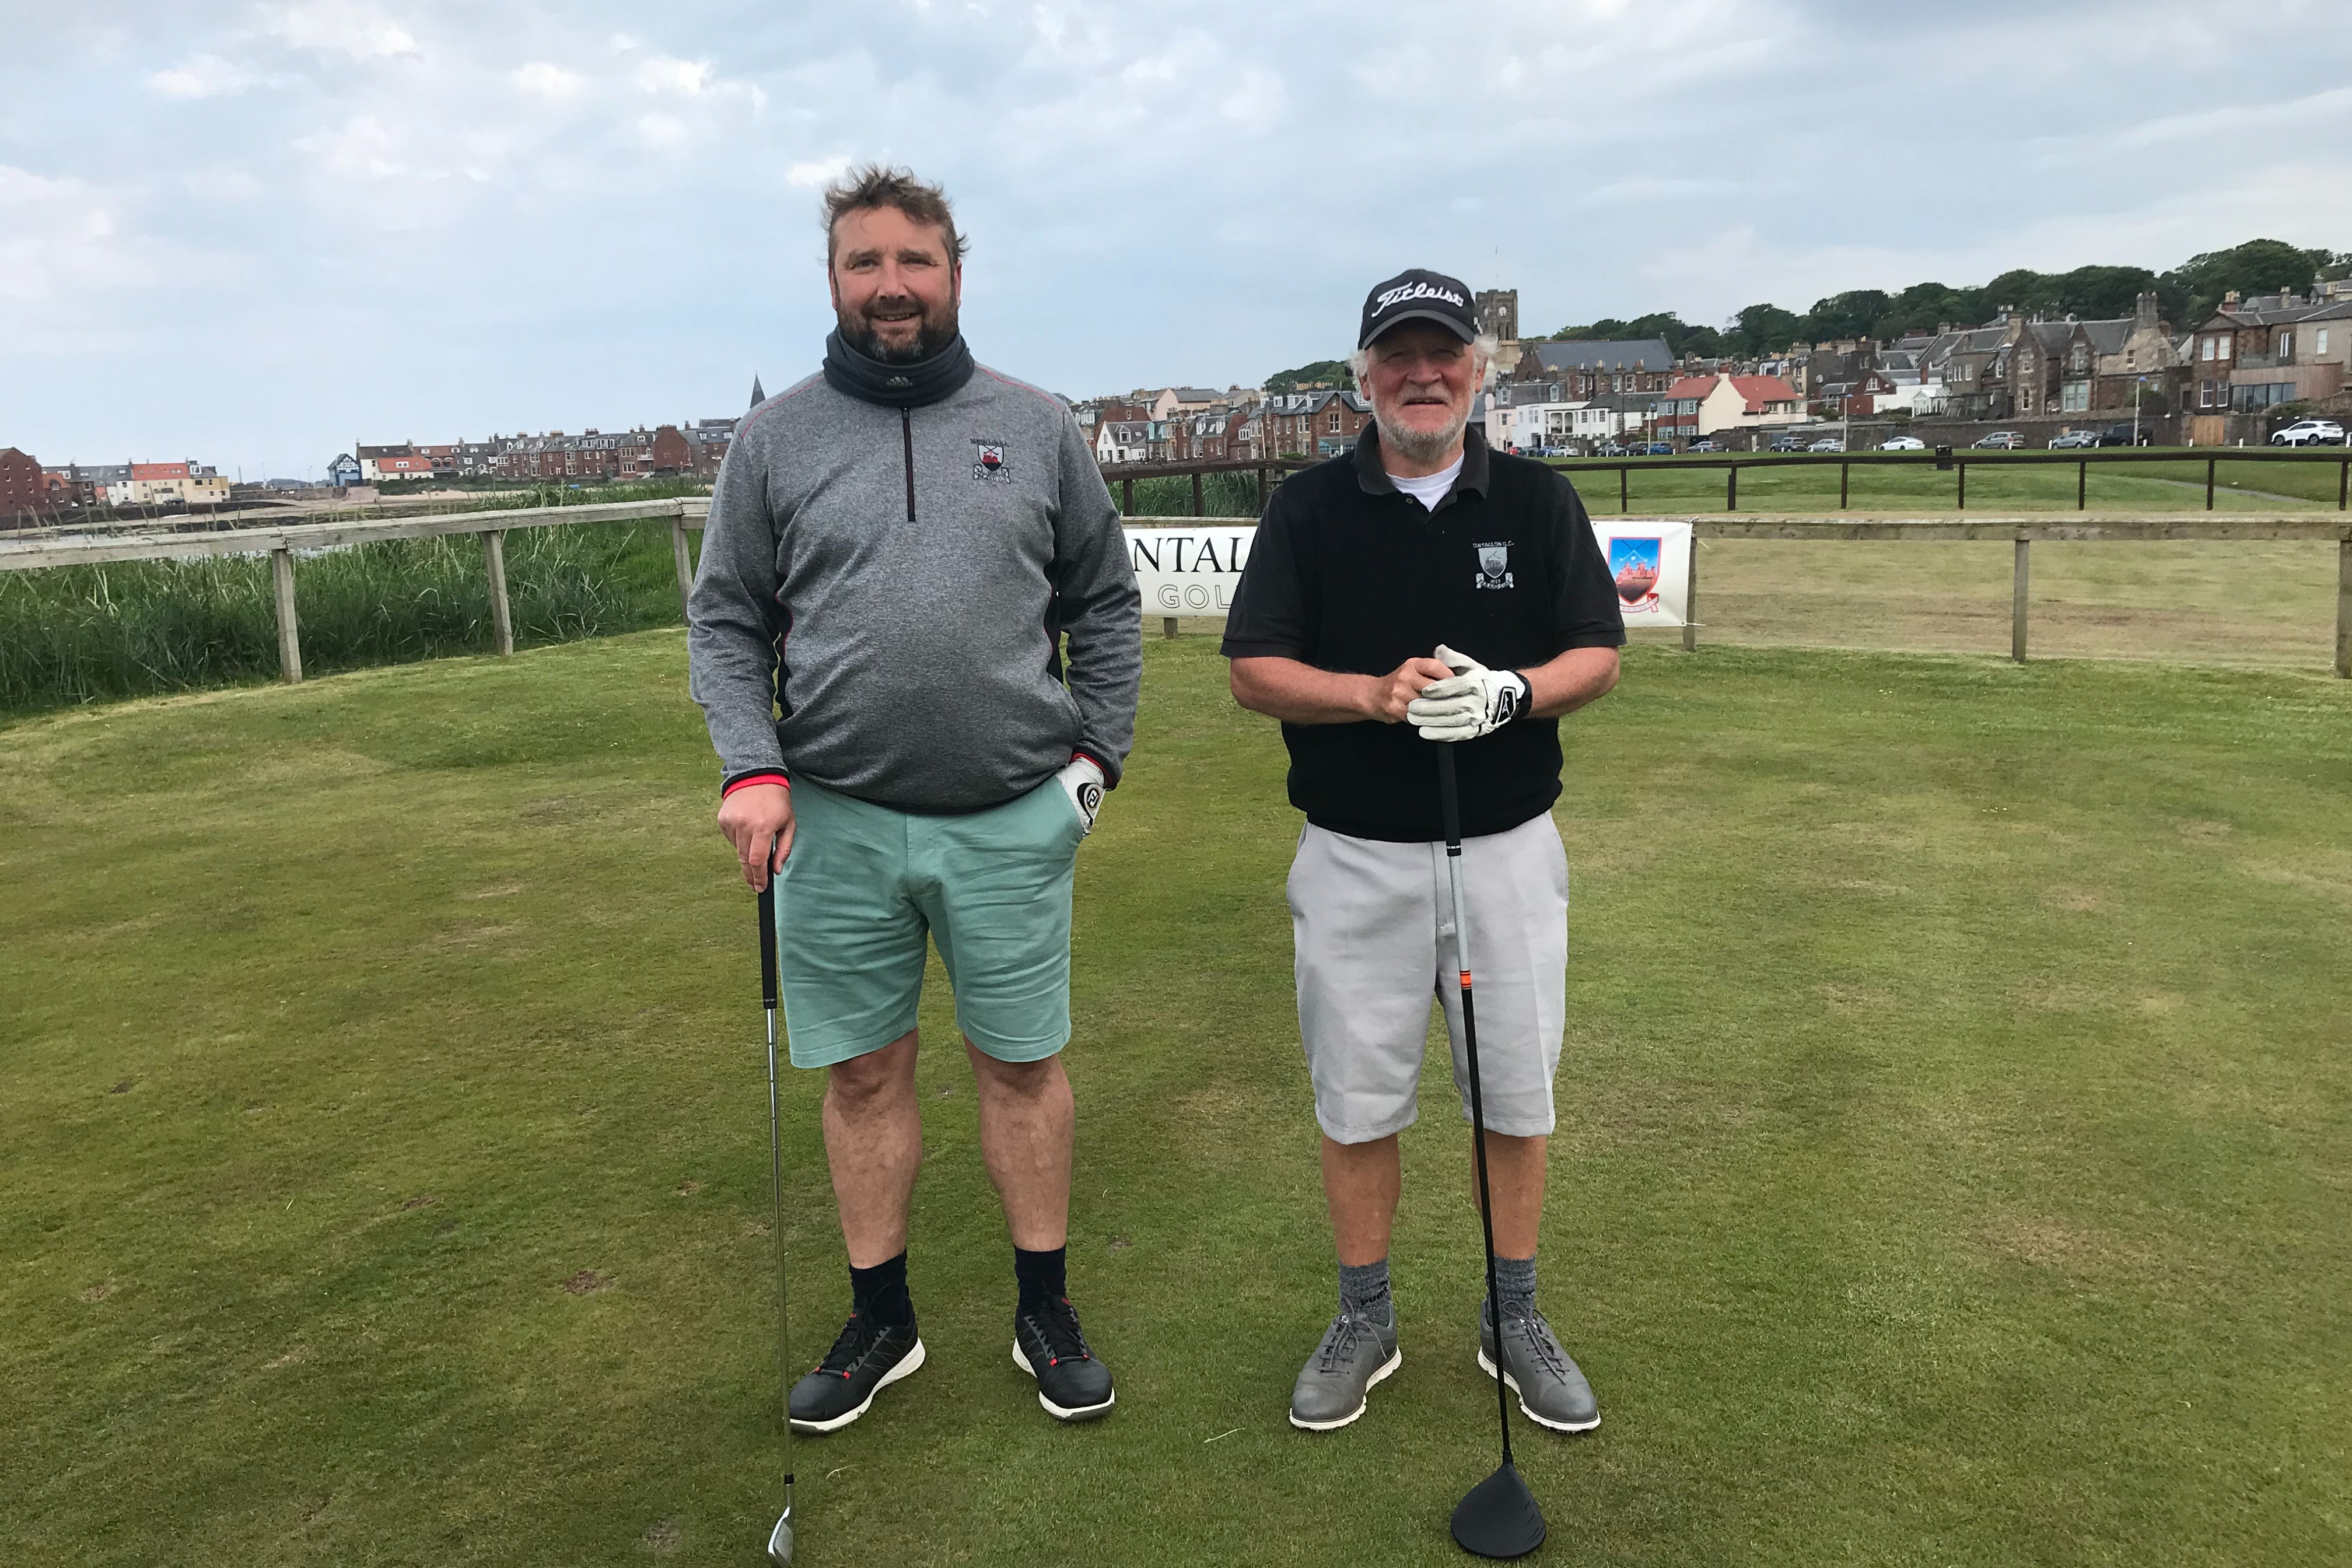 Paul Howson (bearded) holed a 25 footer at the last to see off Iain 'the gentleman' Whiteford